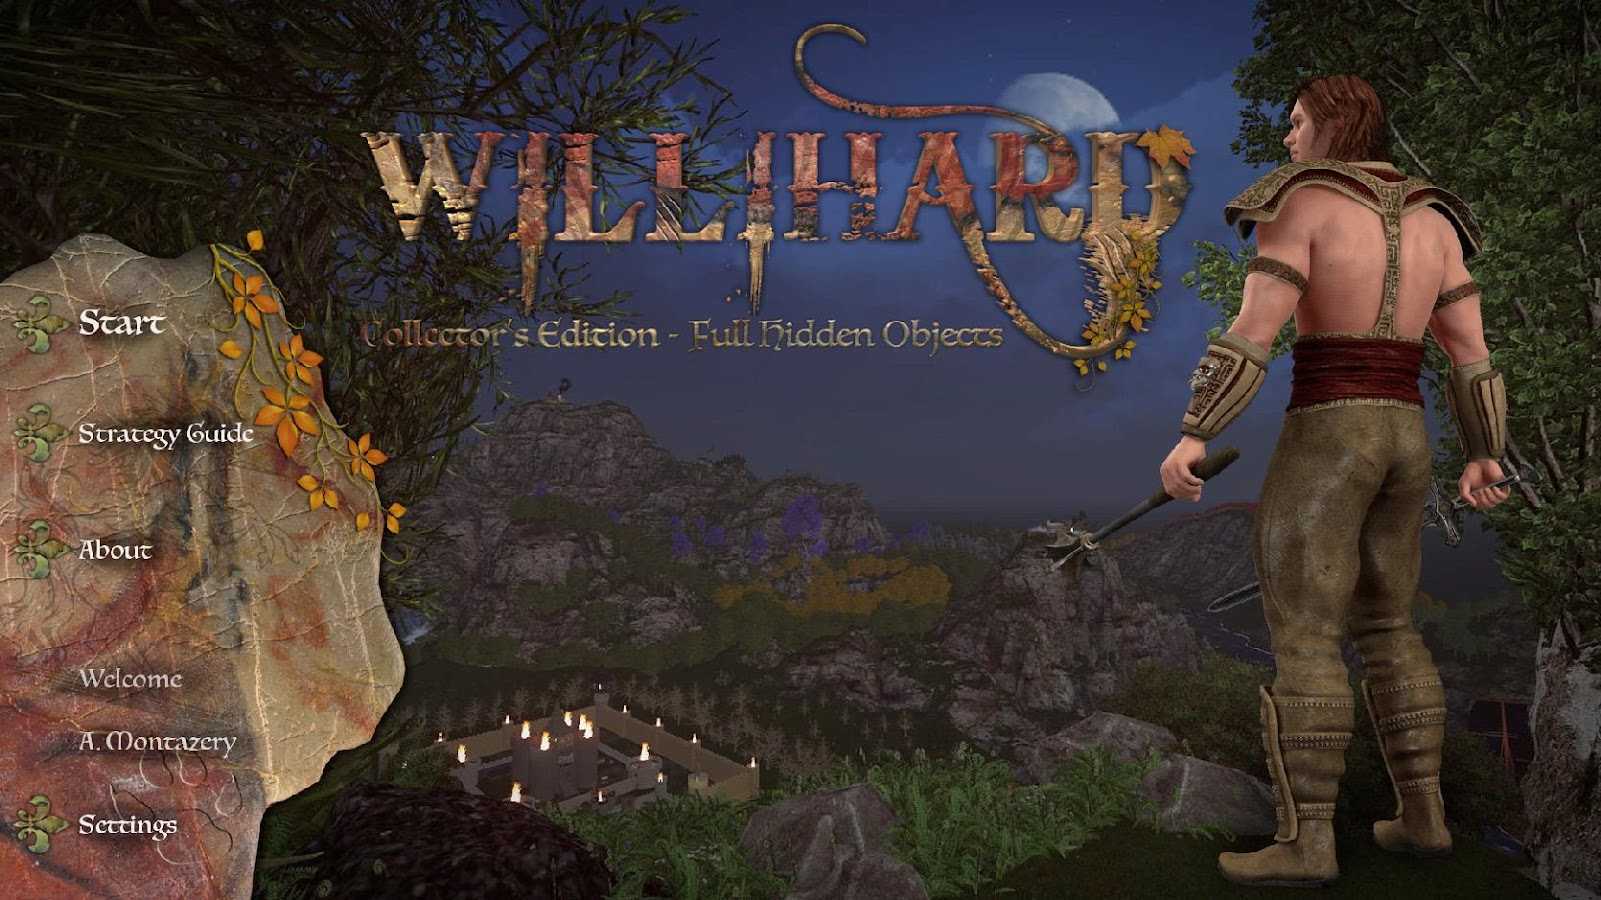 WILLIHARD (Hidden Objects) Screenshot 16